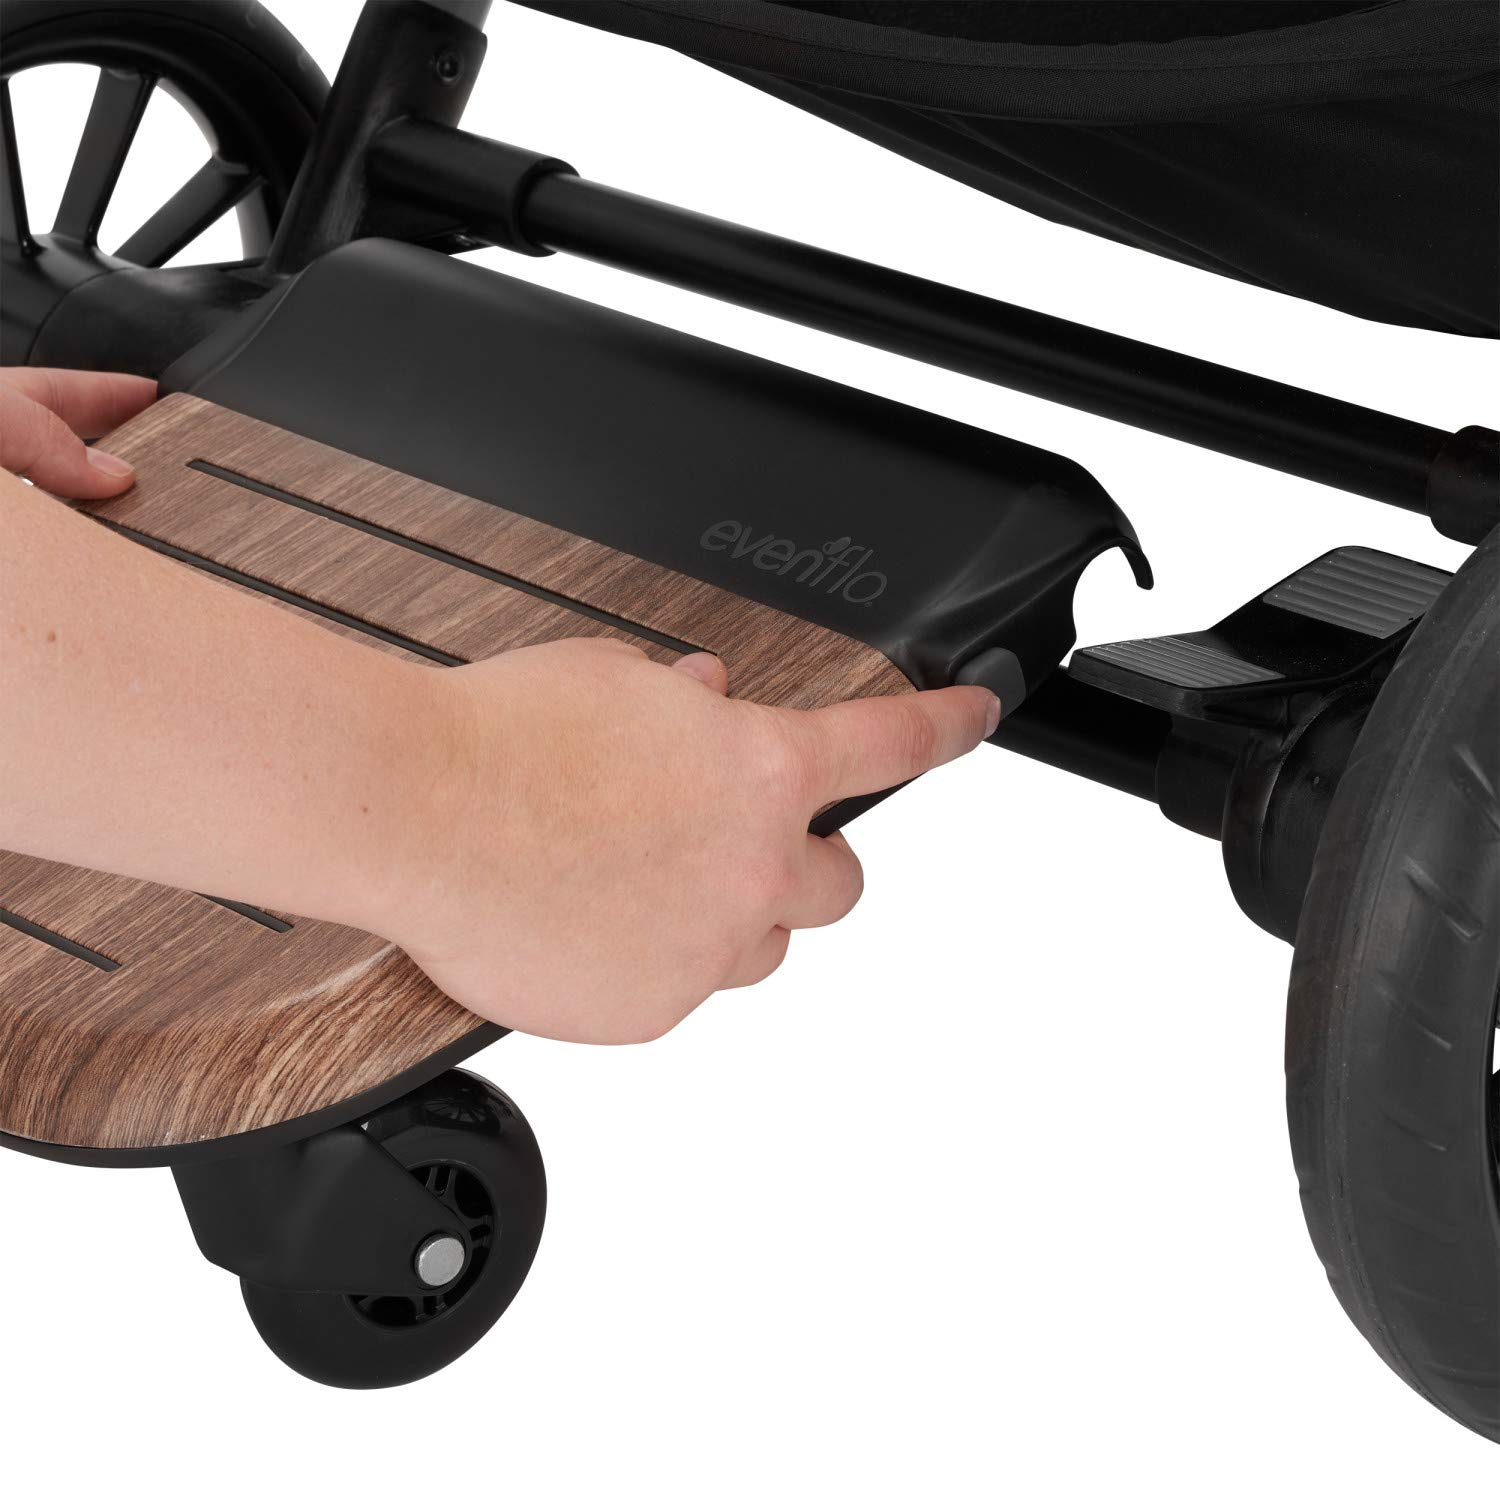 Evenflo Stroller Rider Board, Convenient Riding Options, Non-Skid Surface, Smooth-Ride Wheels, Easy to Use, Holds up to 50 Pounds, No Additional Parts Needed by Evenflo (Image #3)